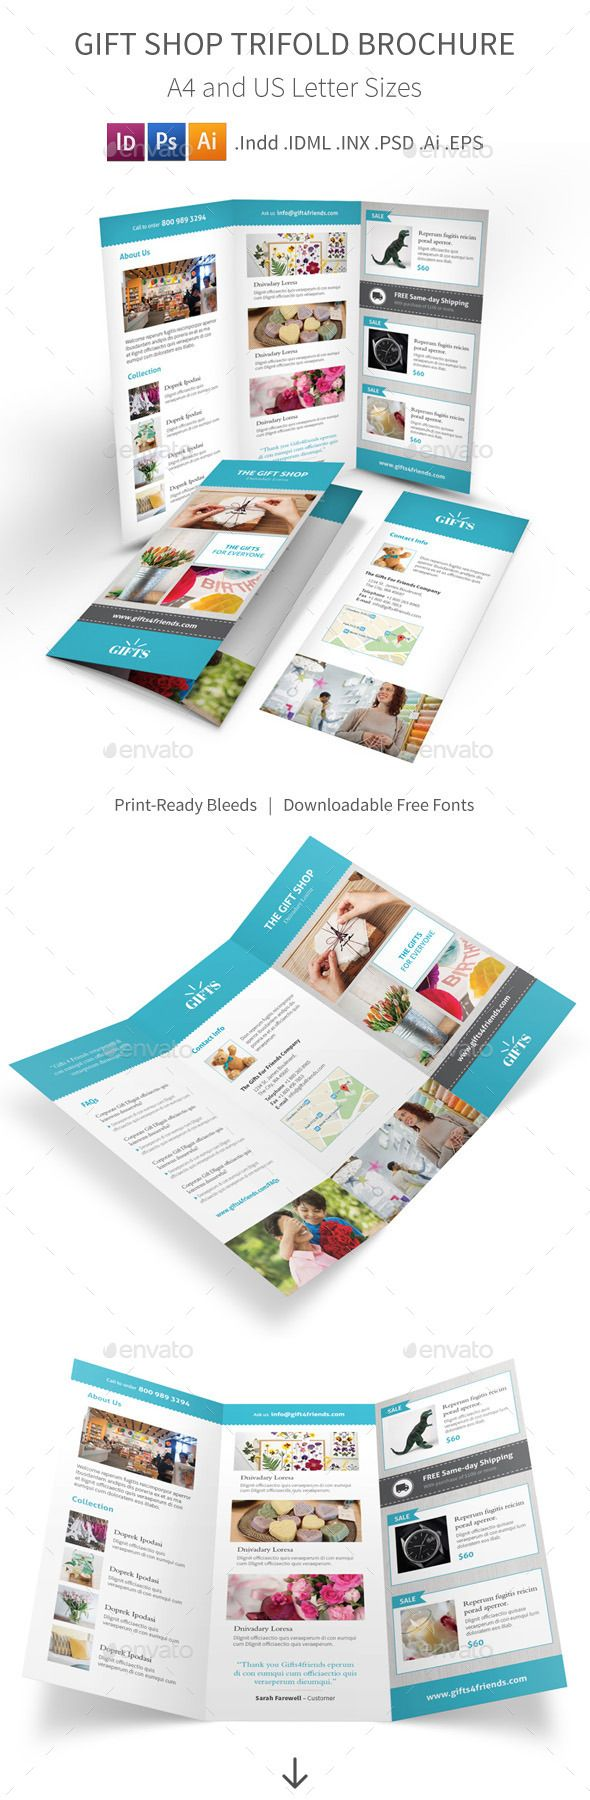 Gift Shop Trifold Brochure Informational Brochure Template PSD - Informational brochure template